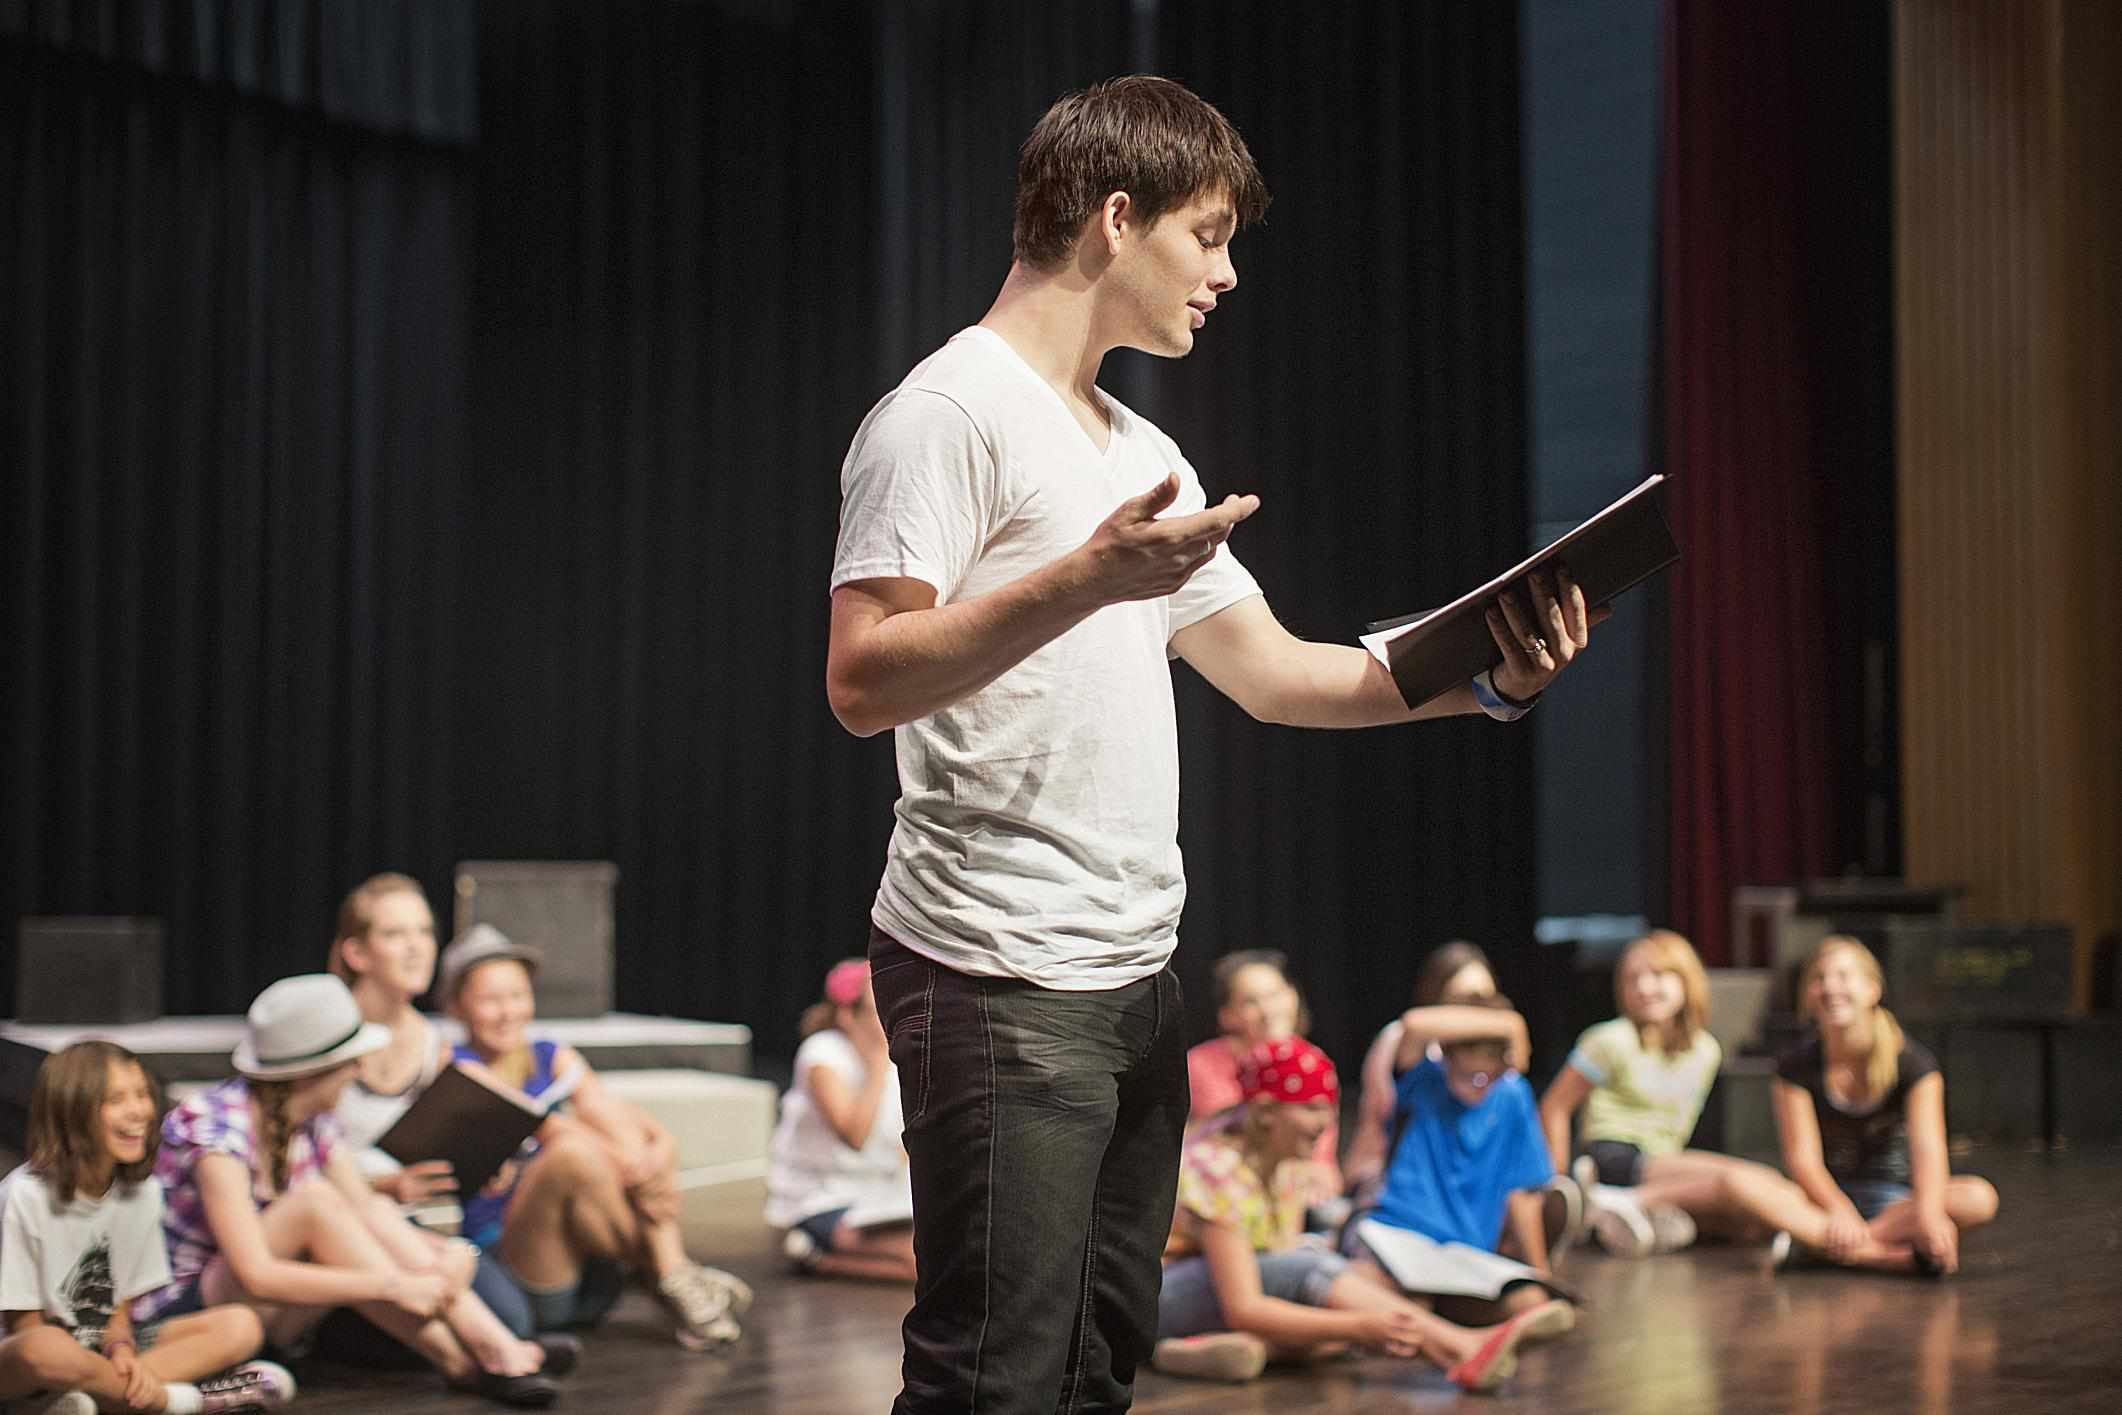 Young man on stage in an acting class